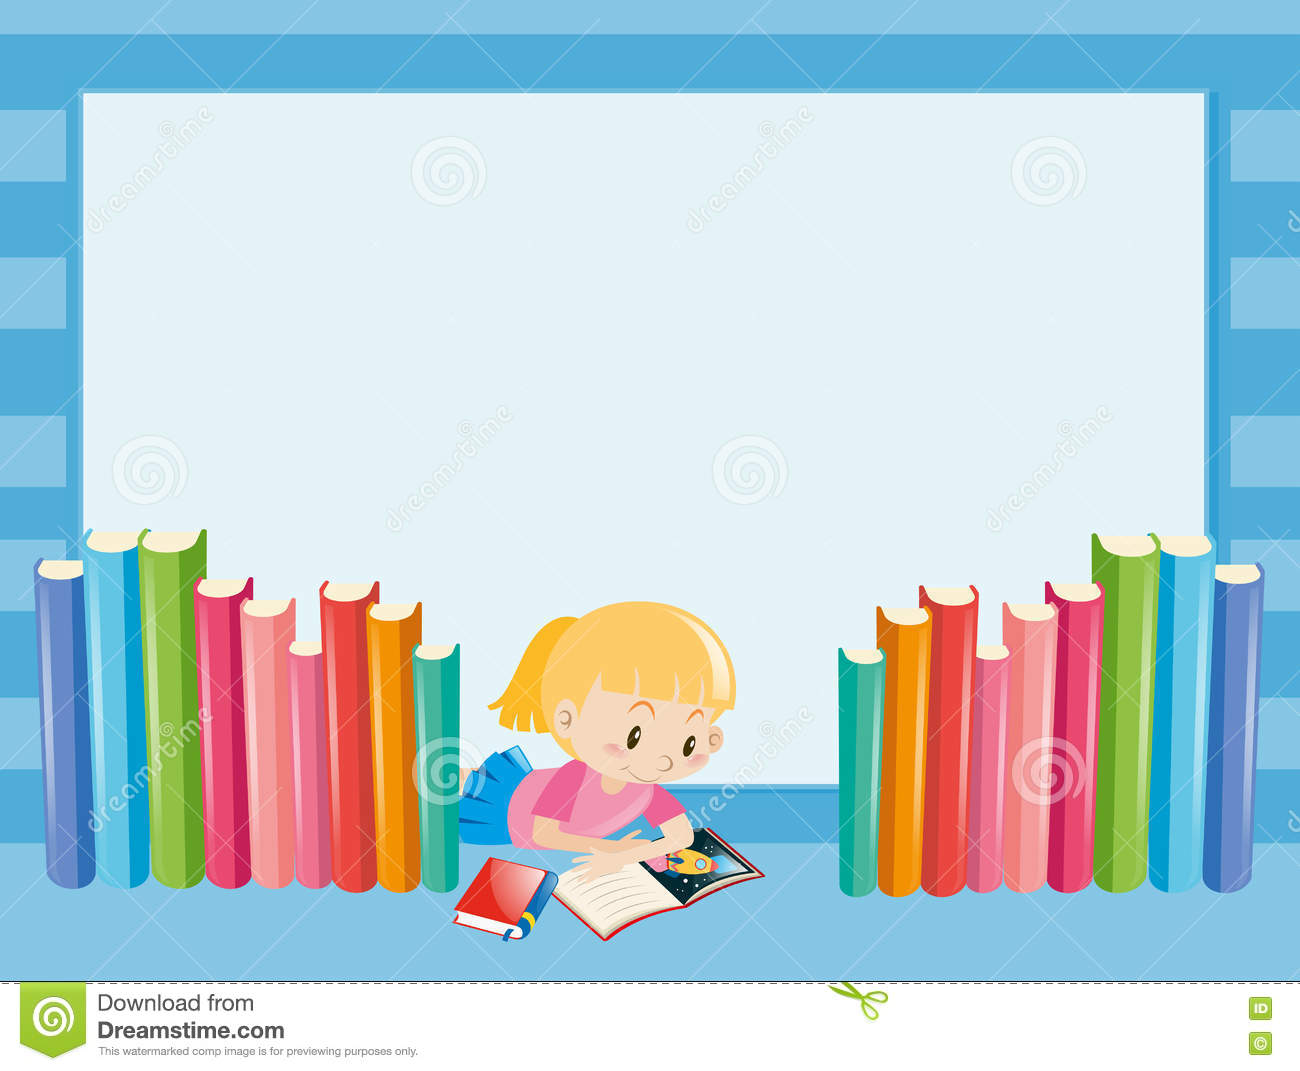 Border Template With Girl Reading Book Stock Vector - Image: 81169001